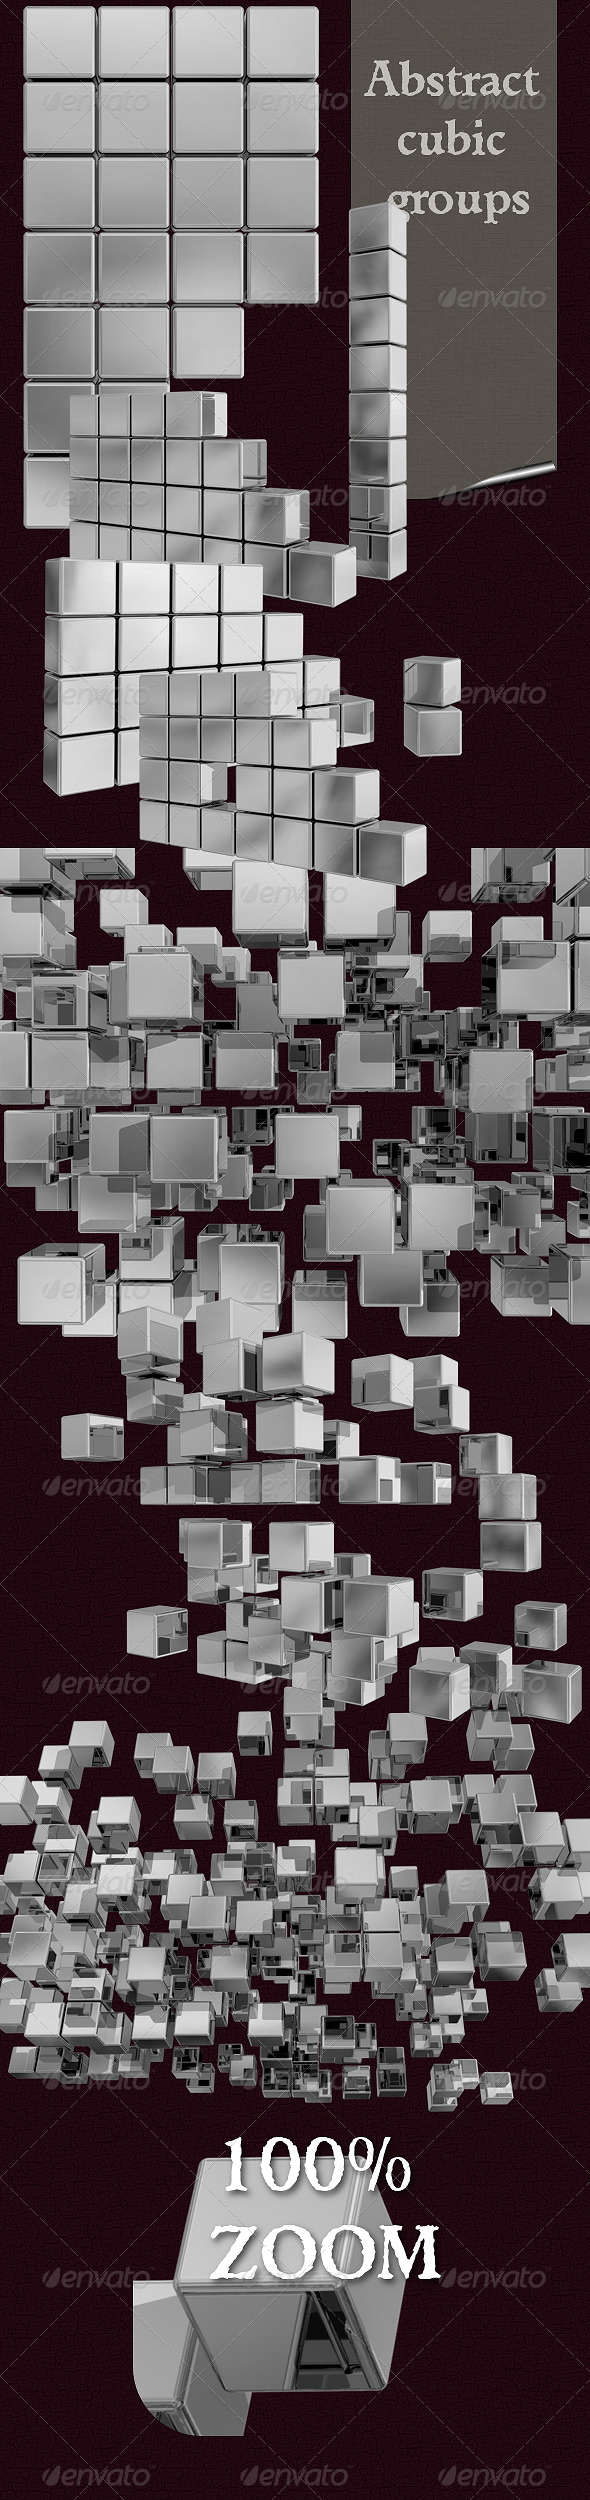 Abstract Cubic Groups - 3D Backgrounds